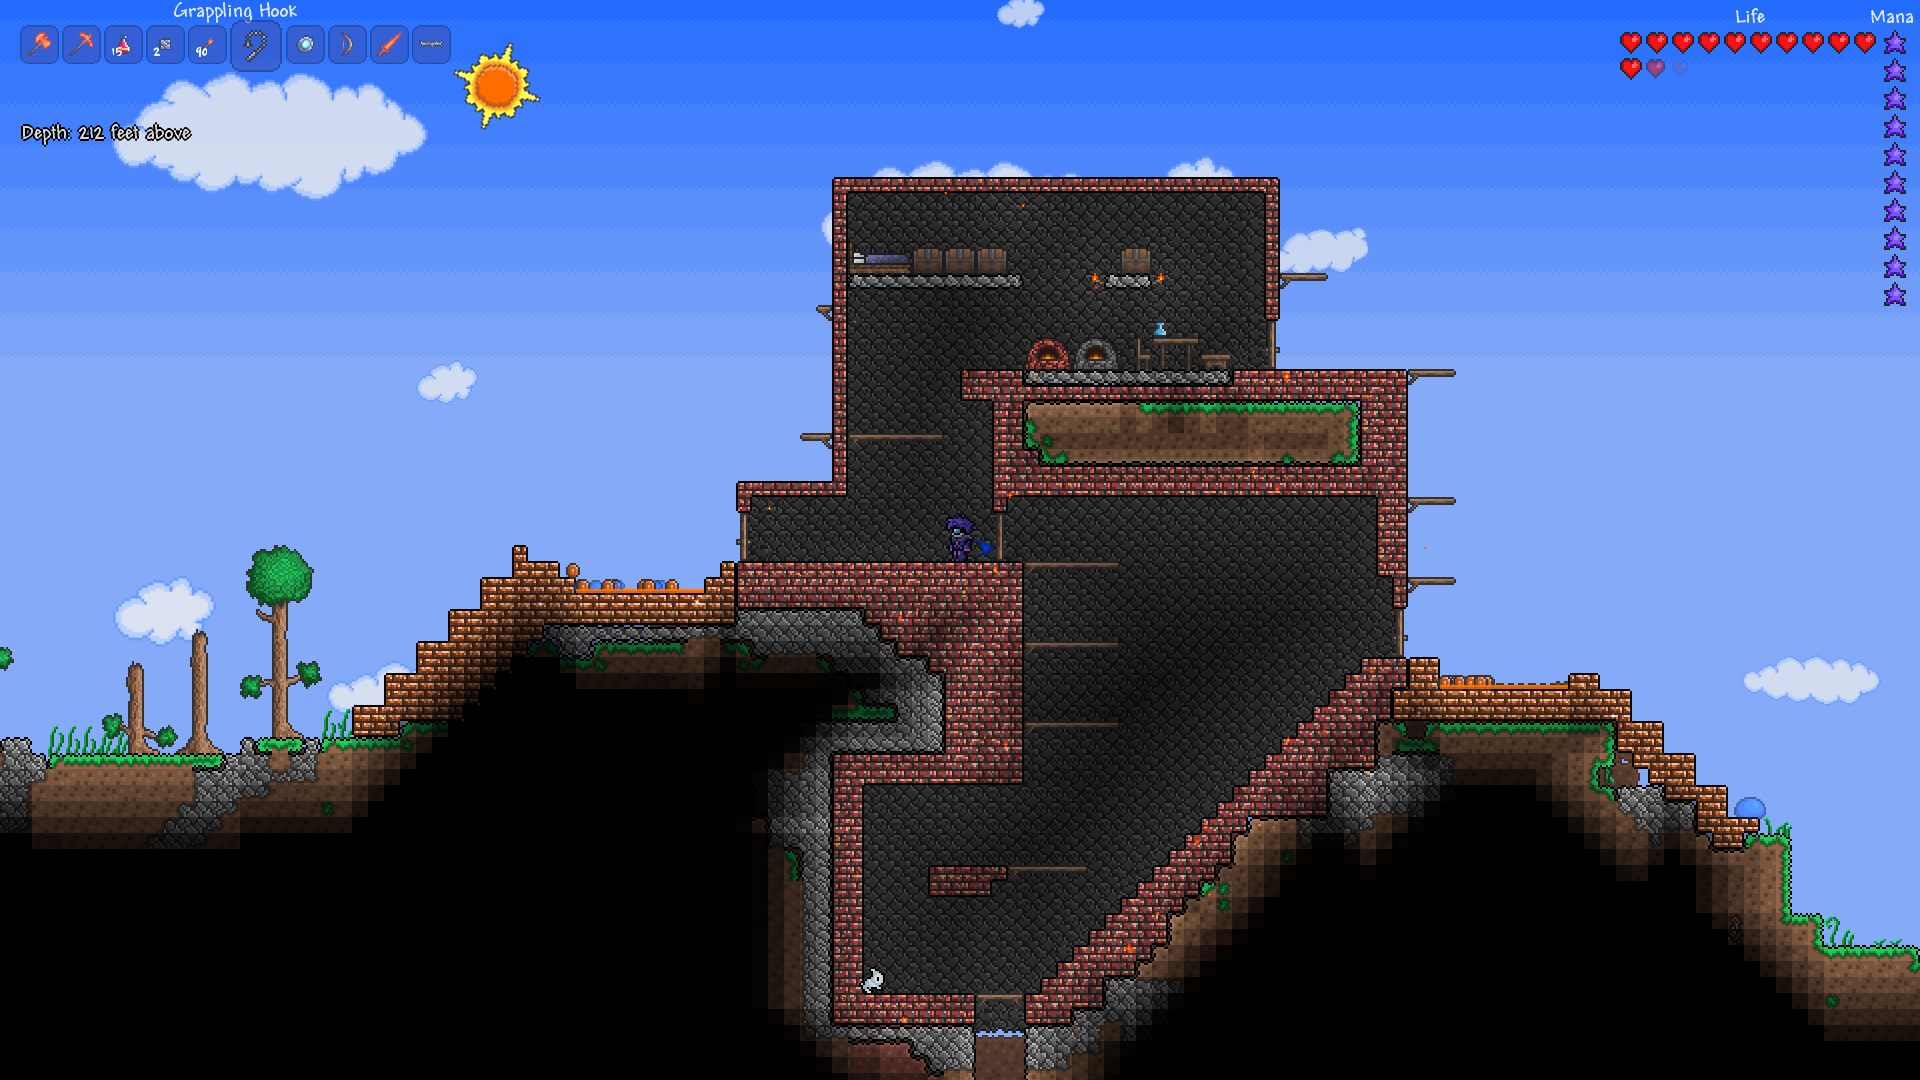 House contest terraria forum neoseeker forums